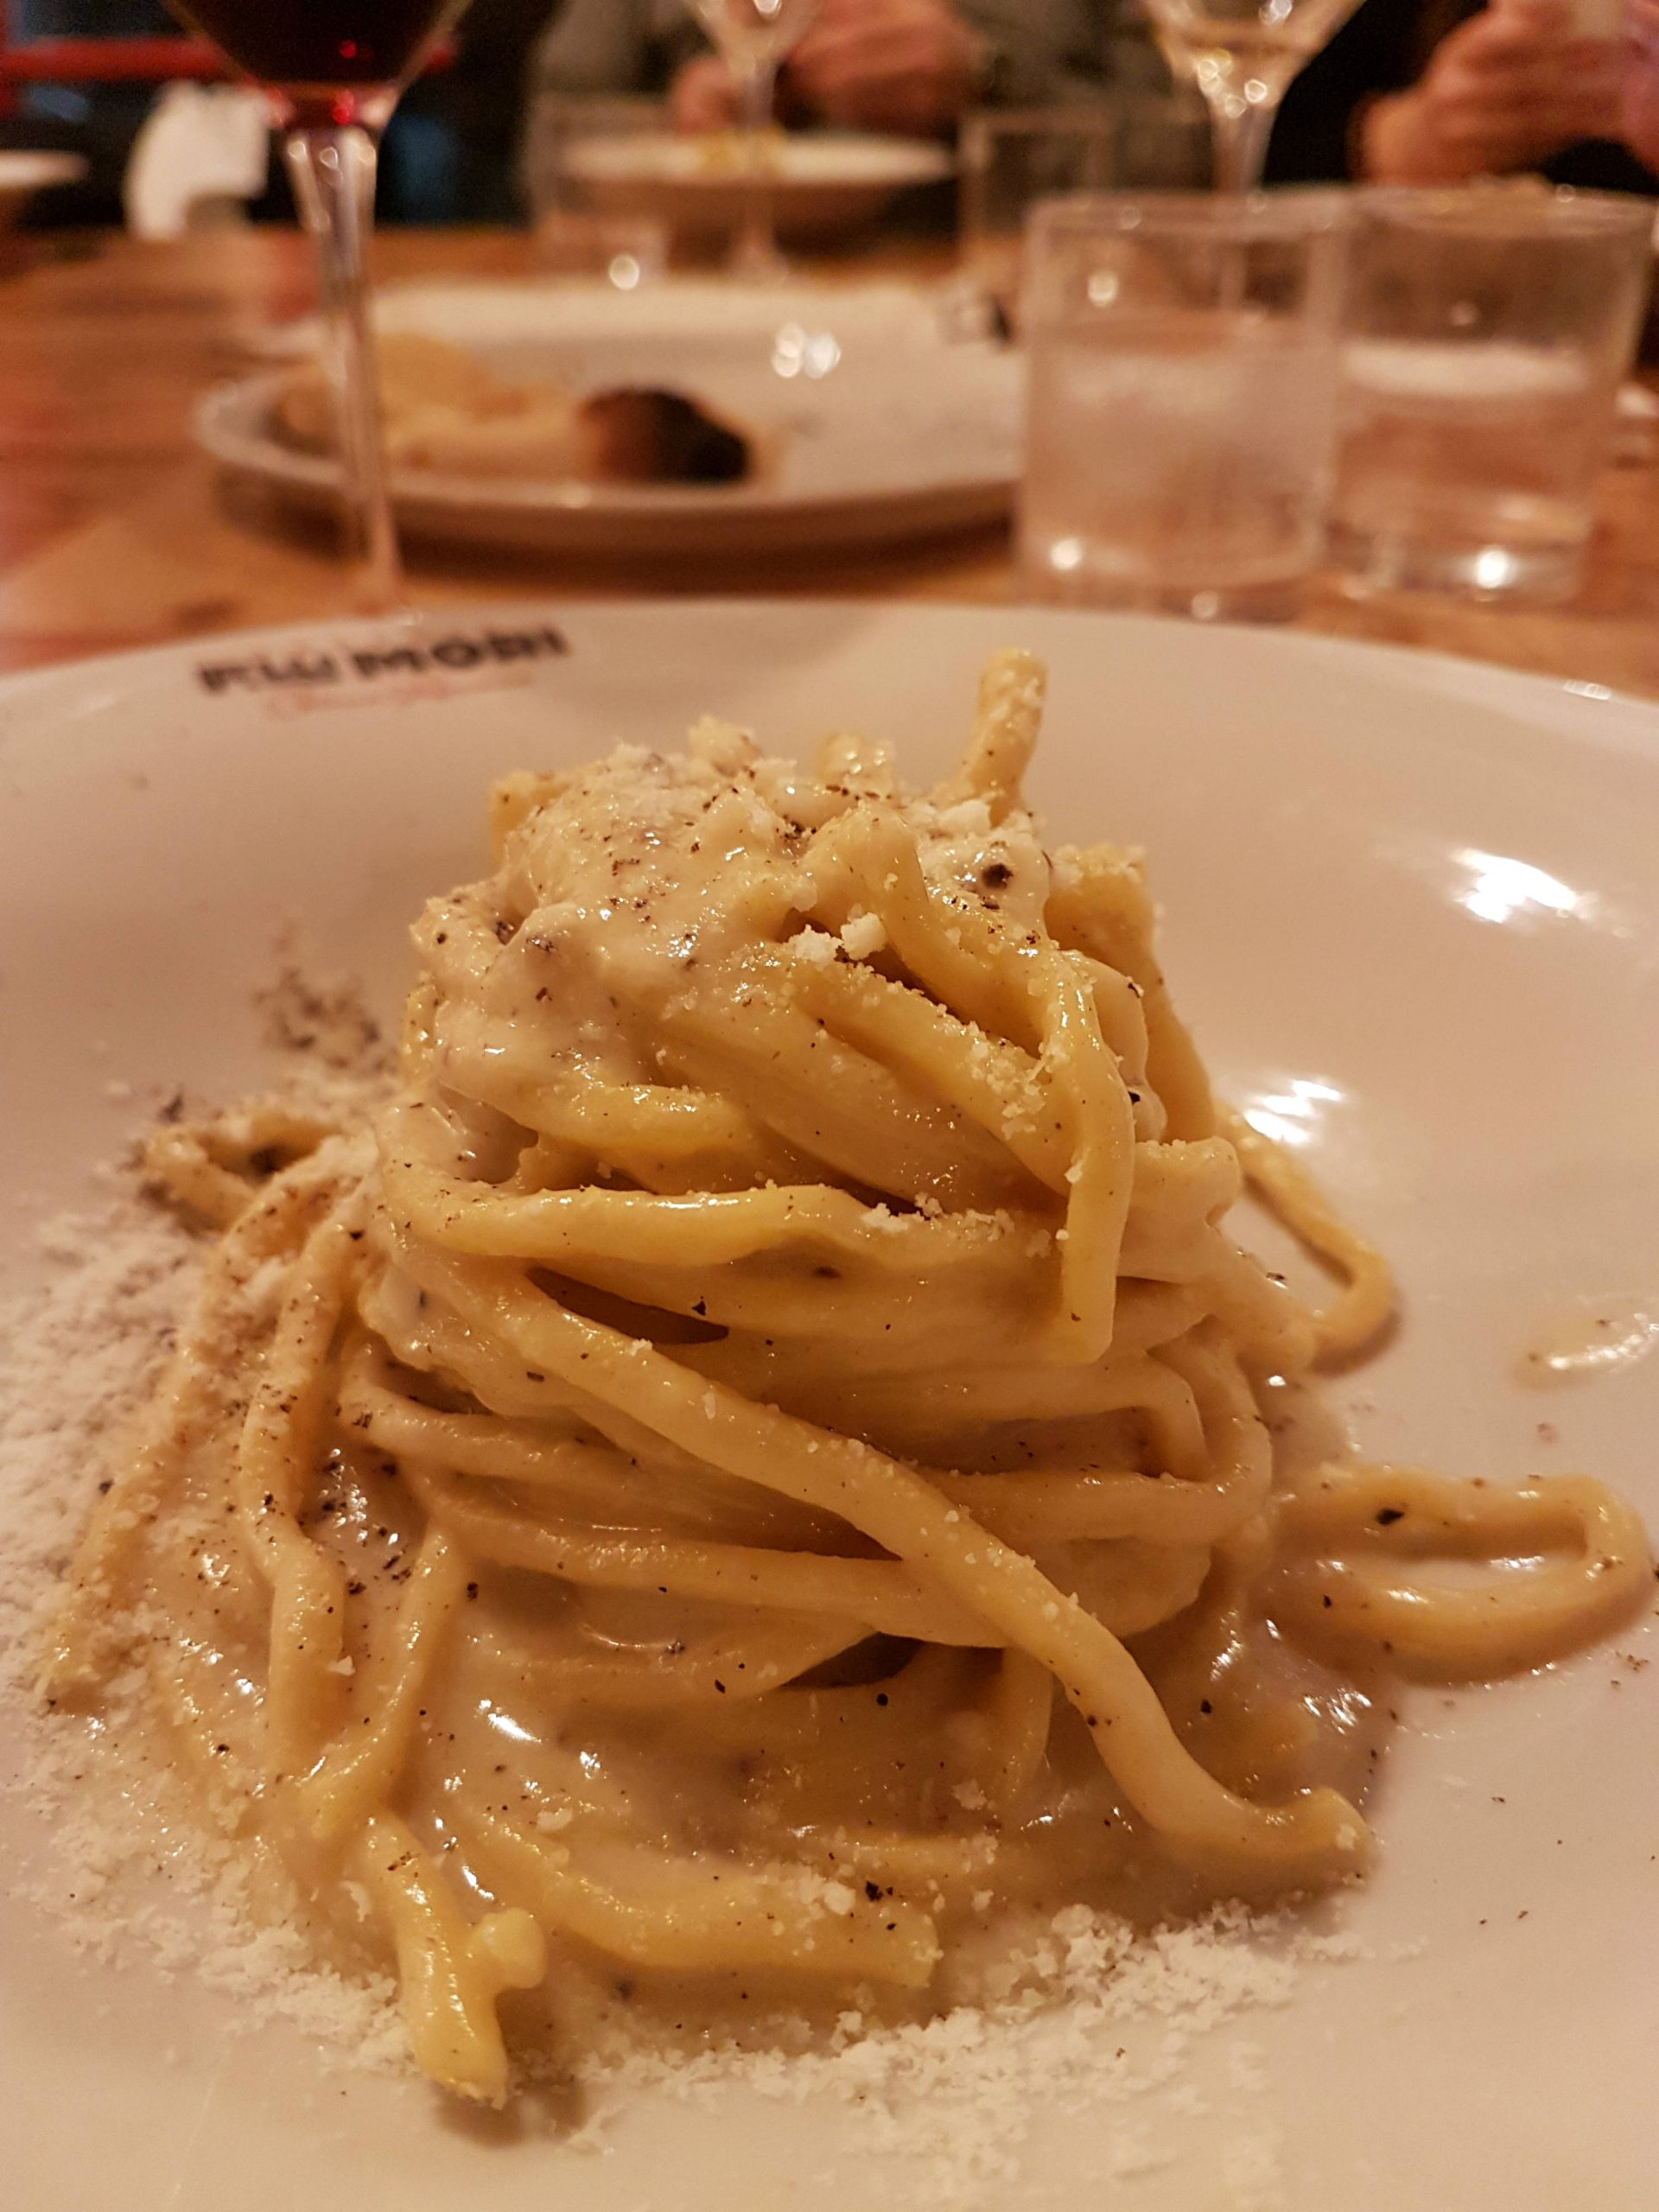 Review of Osteria Fratelli Mori, Roma Ostiense, a traditional Roman trattoria which never disappoints with its seasonal ingredients and Italian ingenuity.